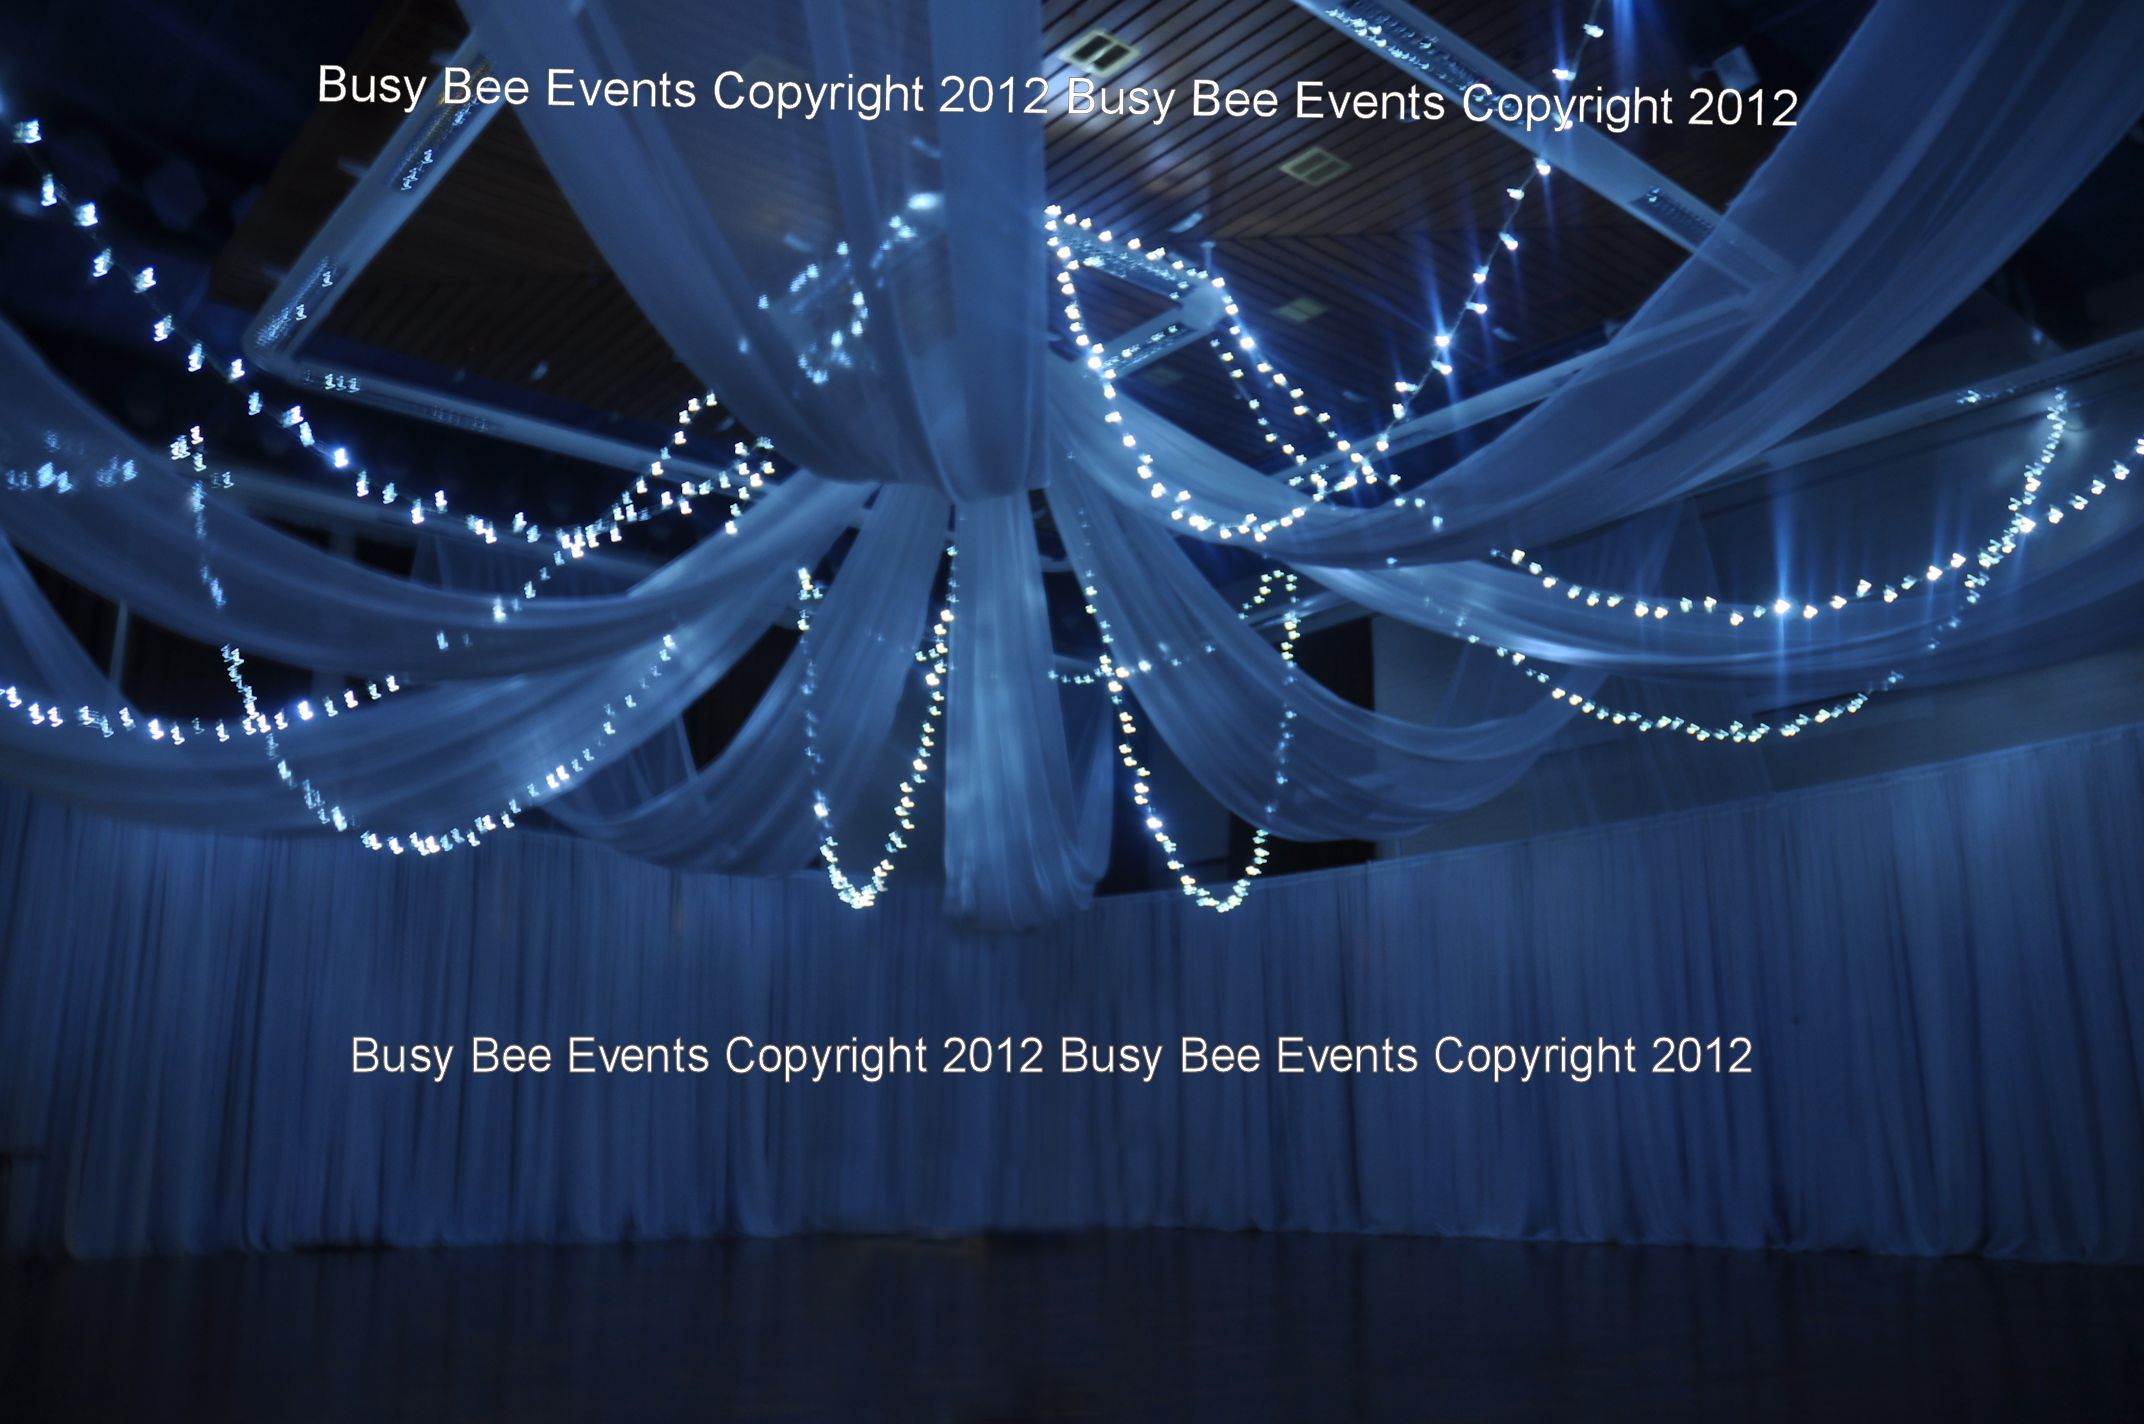 this events will do with pin for joy possible i how if ceiling drapes weep lighting is to hang